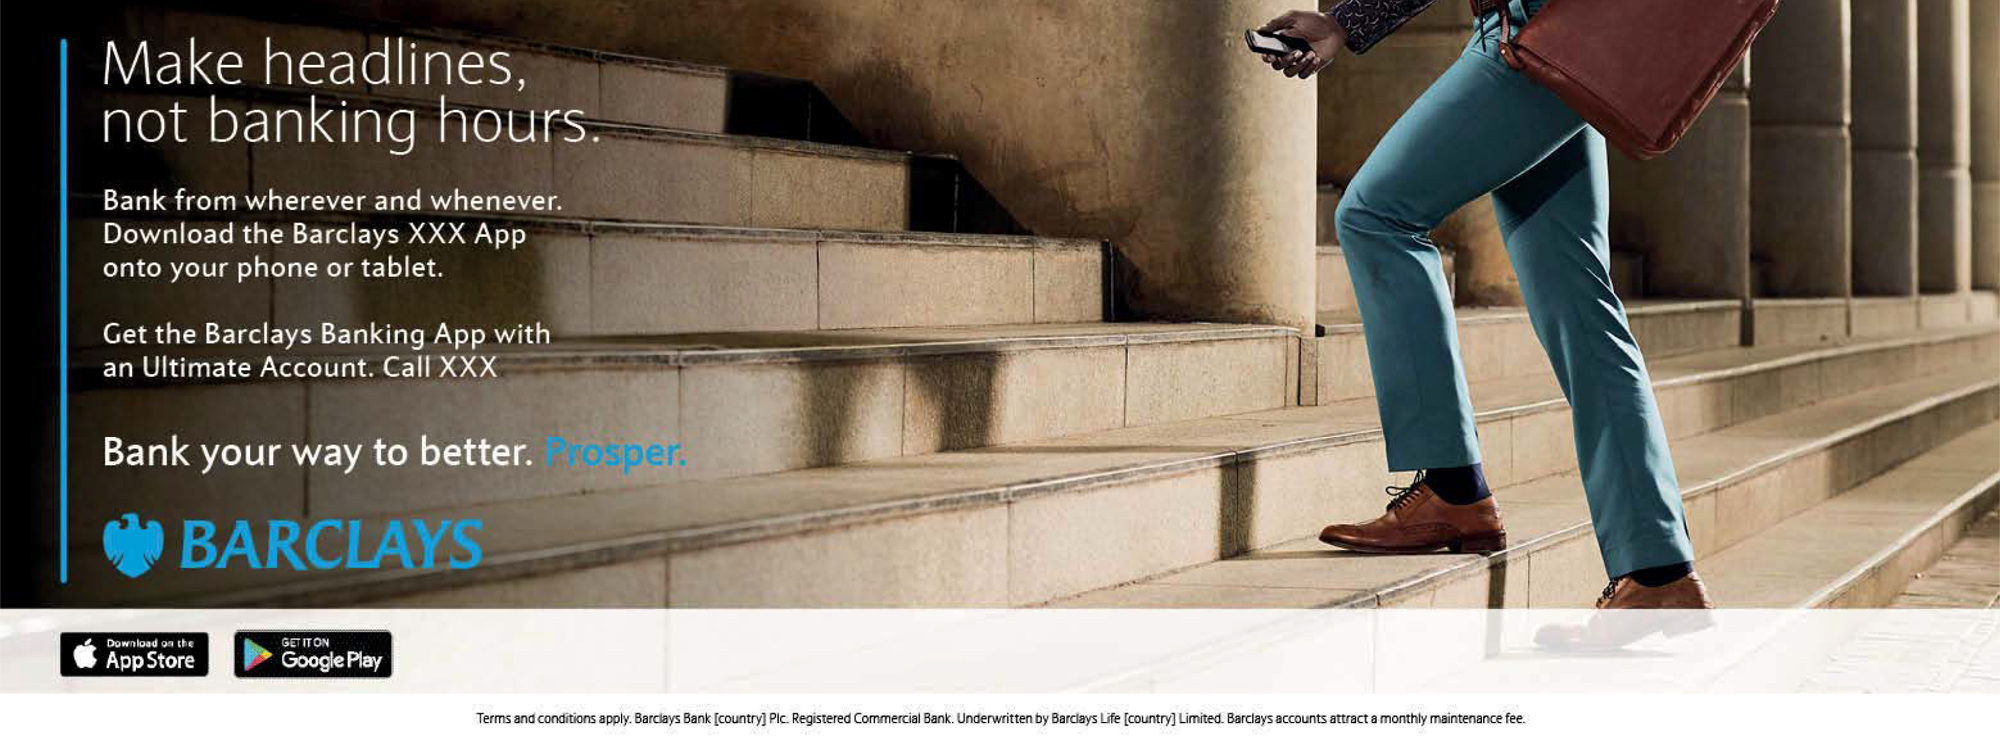 Barclays Personal Banking Campaign Toolkit 26 APRIL-125.jpg